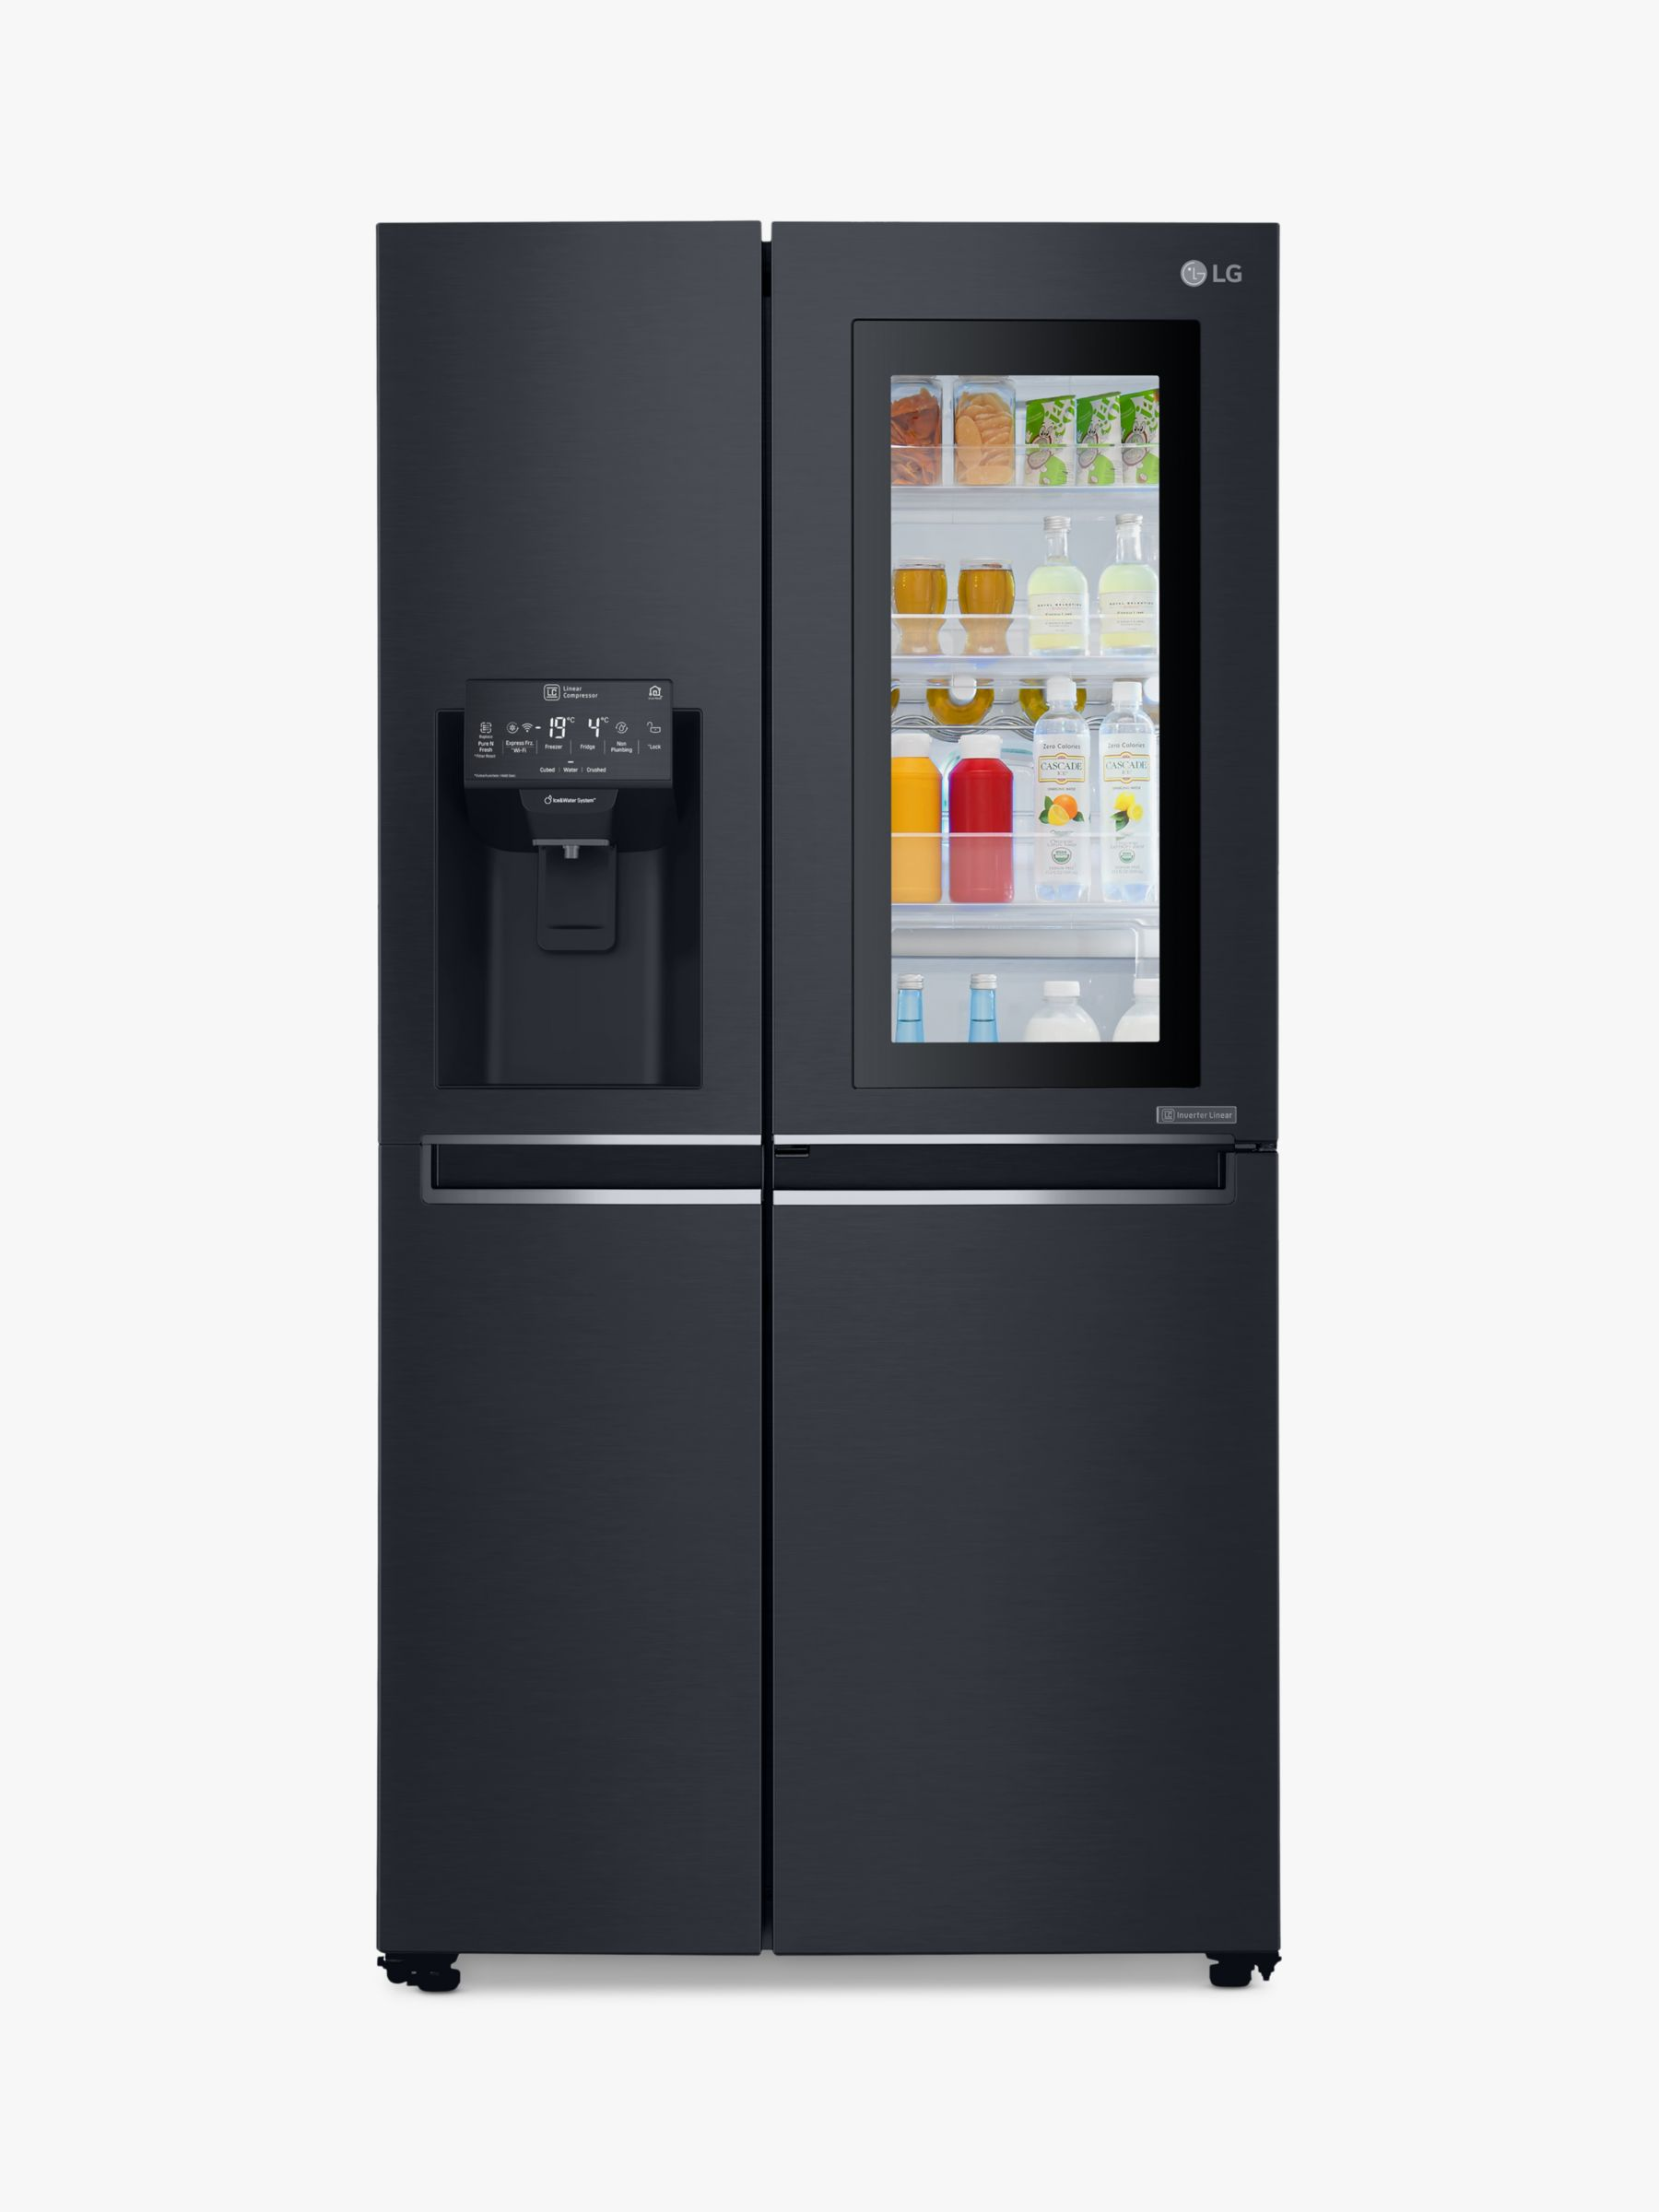 LG LG GSX961MCVZ InstaView Wi-Fi American Style Non-Plumbed Fridge Freezer, A++ Energy Rating, 91.2cm Wide, Matte Black